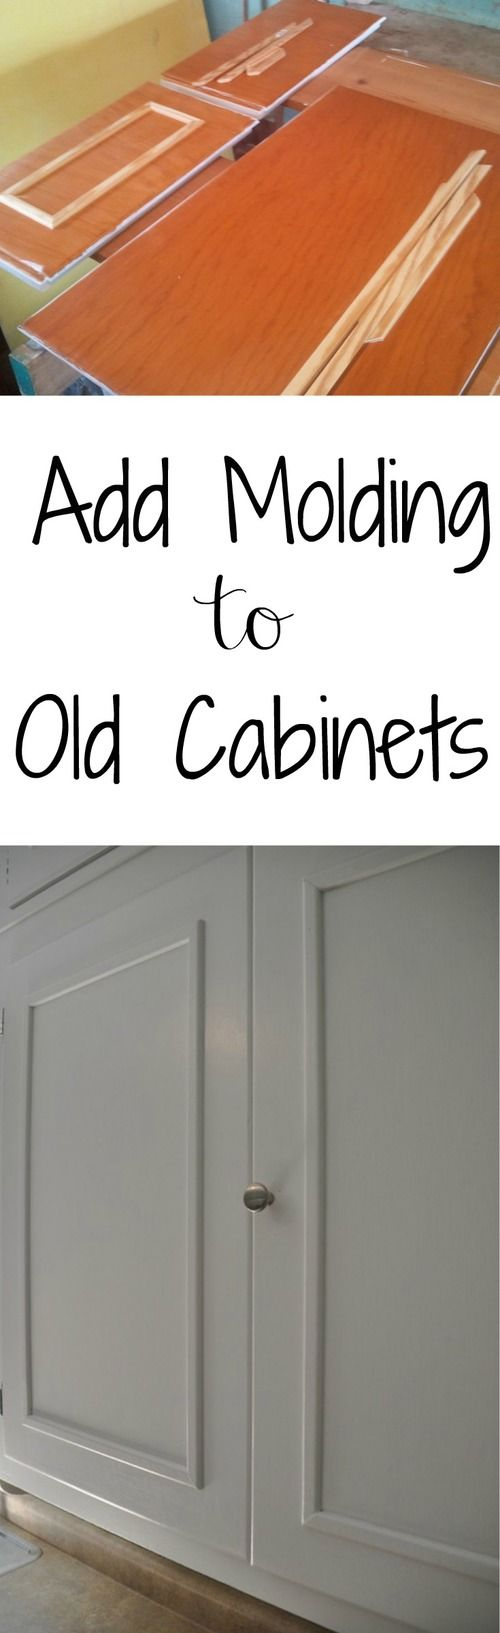 How To Add Cabinet Molding In 2018 Home Make Over Pinterest